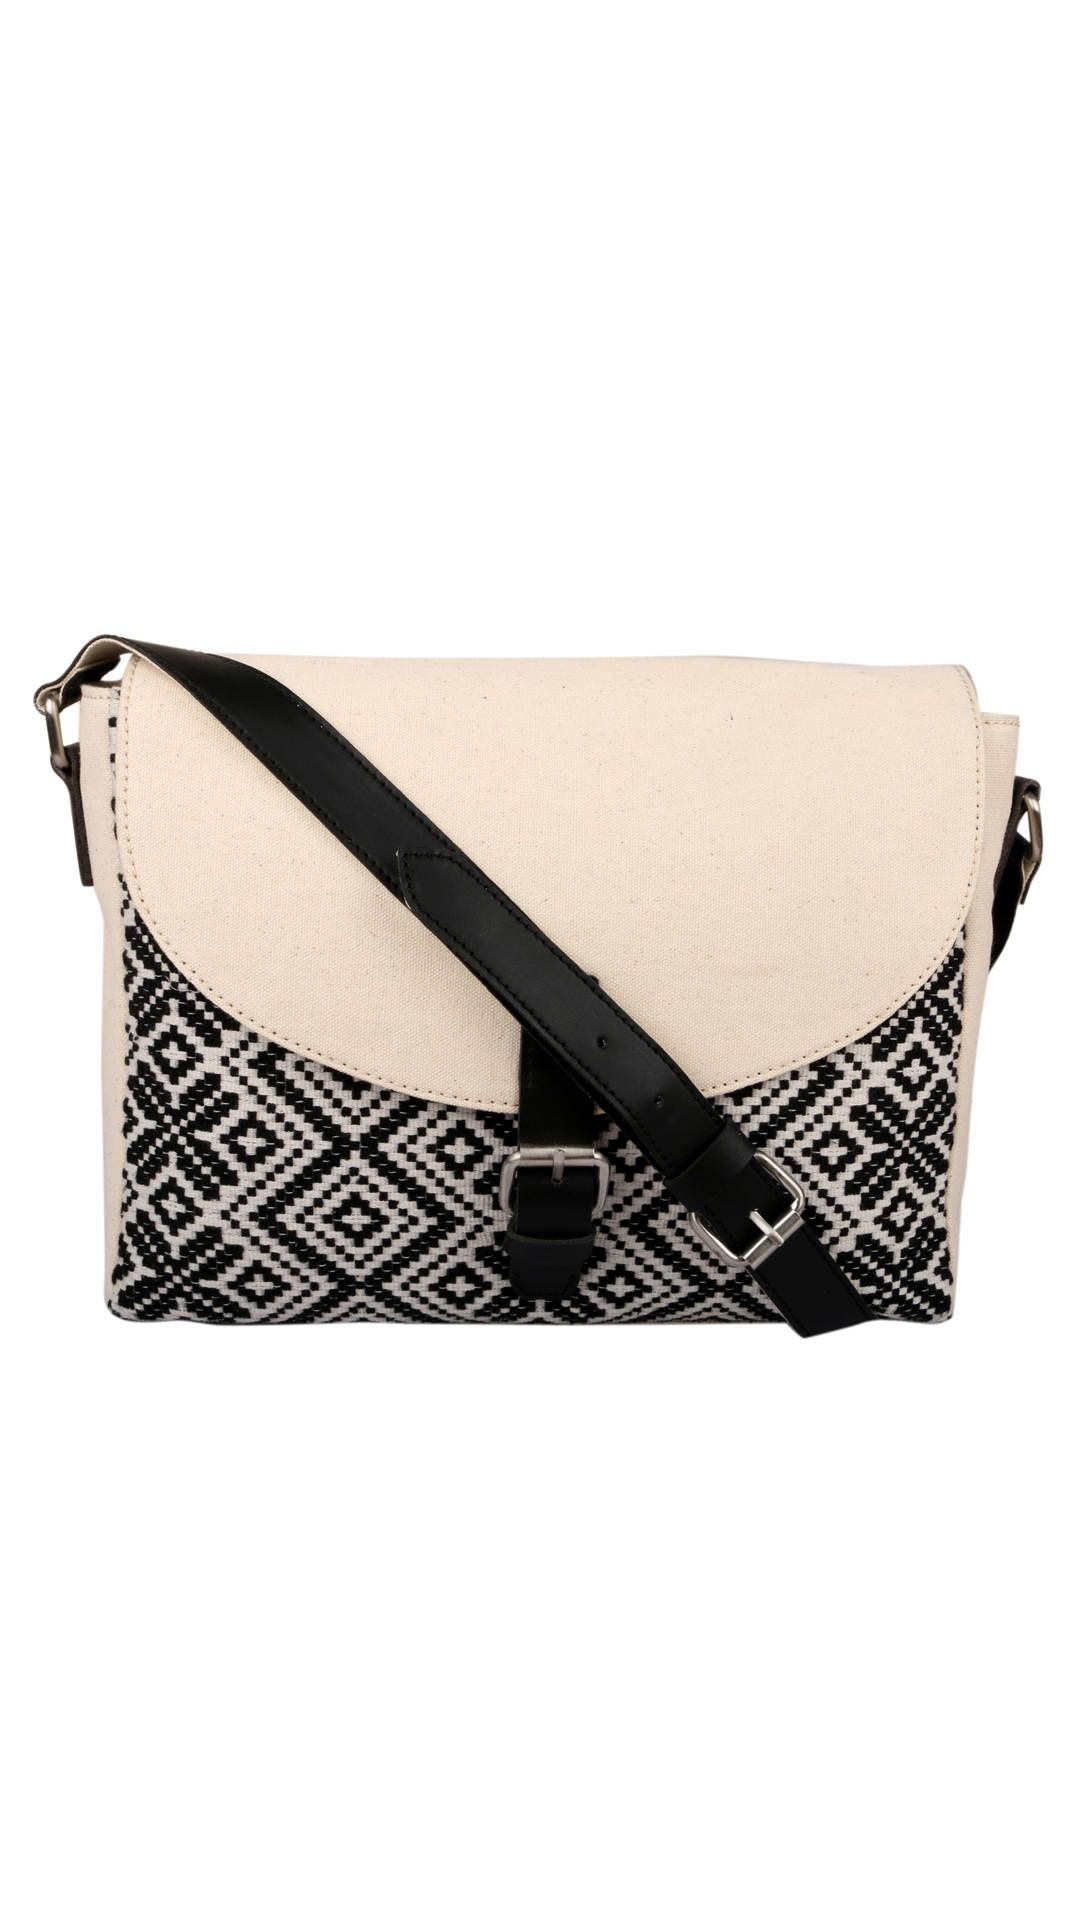 Buy Rebelt Black And Cream Cotton Sling Bag Online at Low Prices ...